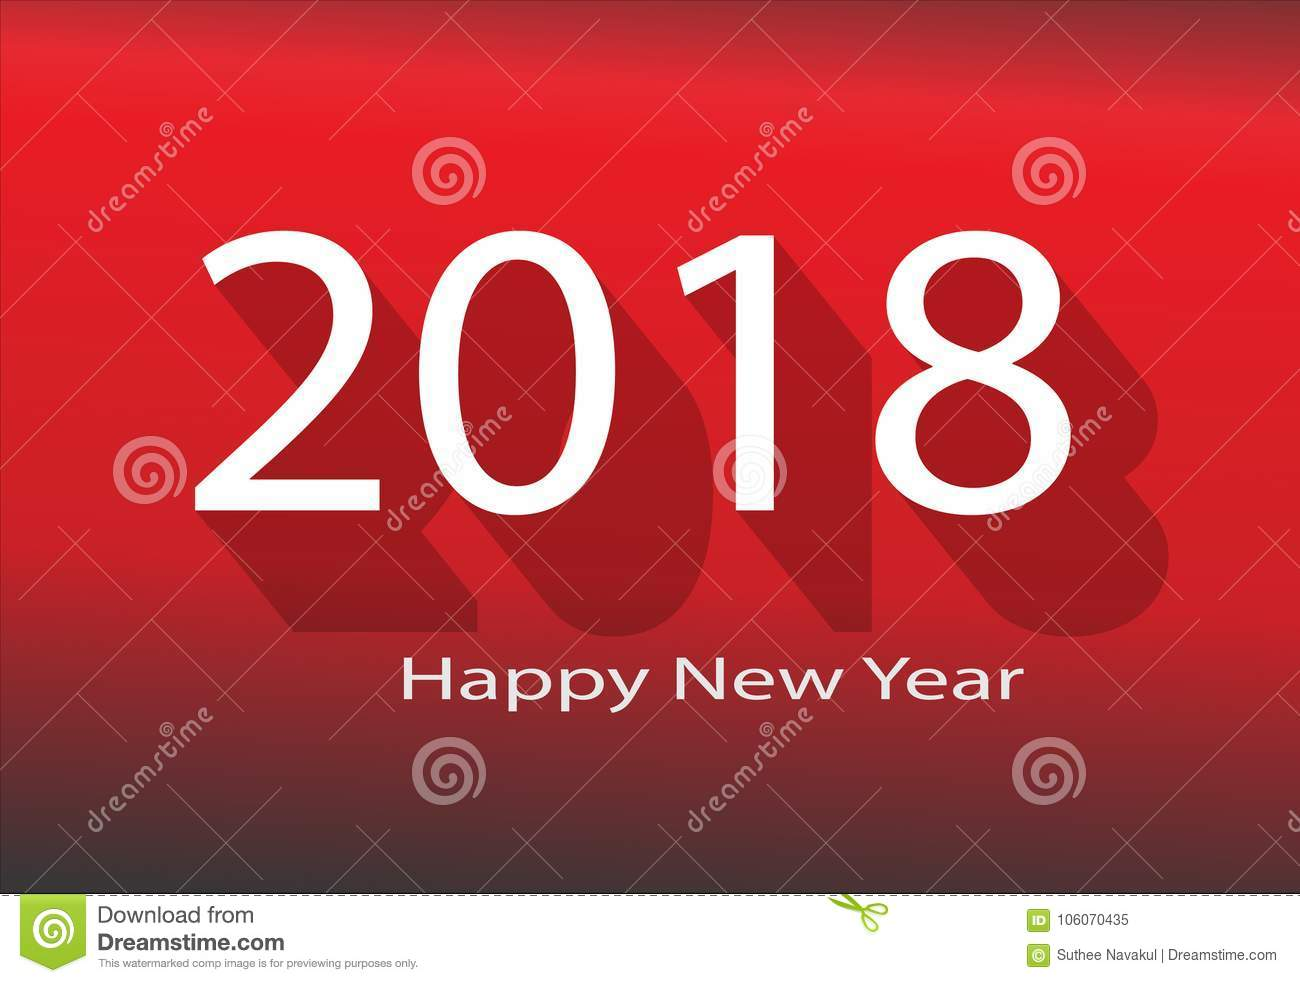 download 2018 happy new year 2018 on red background stock vector illustration of